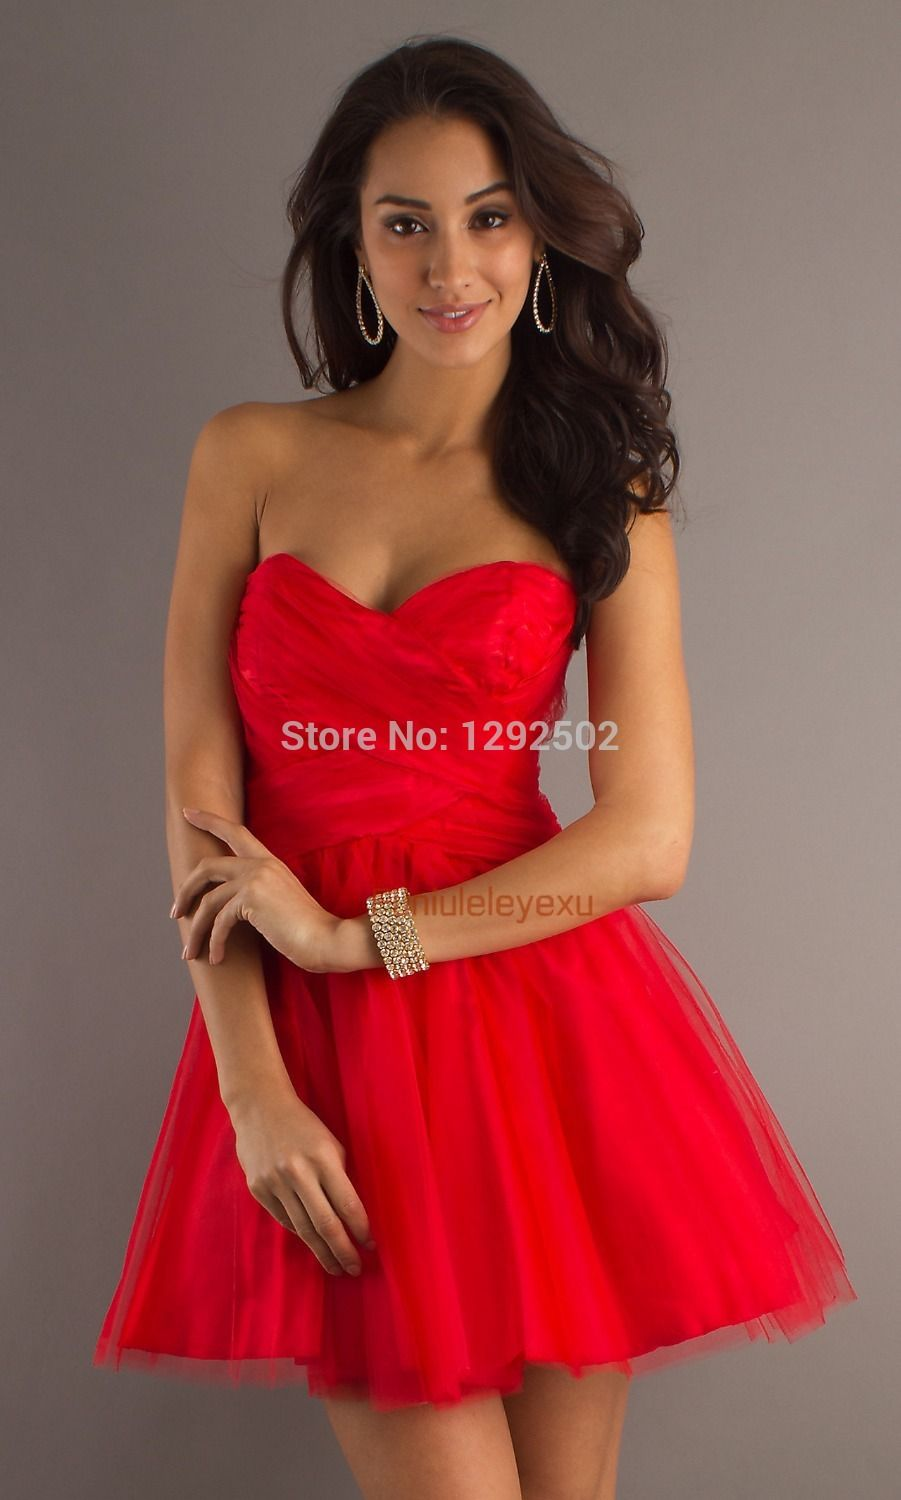 Cheap dress to order - Cheap Dress Greens Buy Quality Dresses Made To Order From China Directly From China Dress